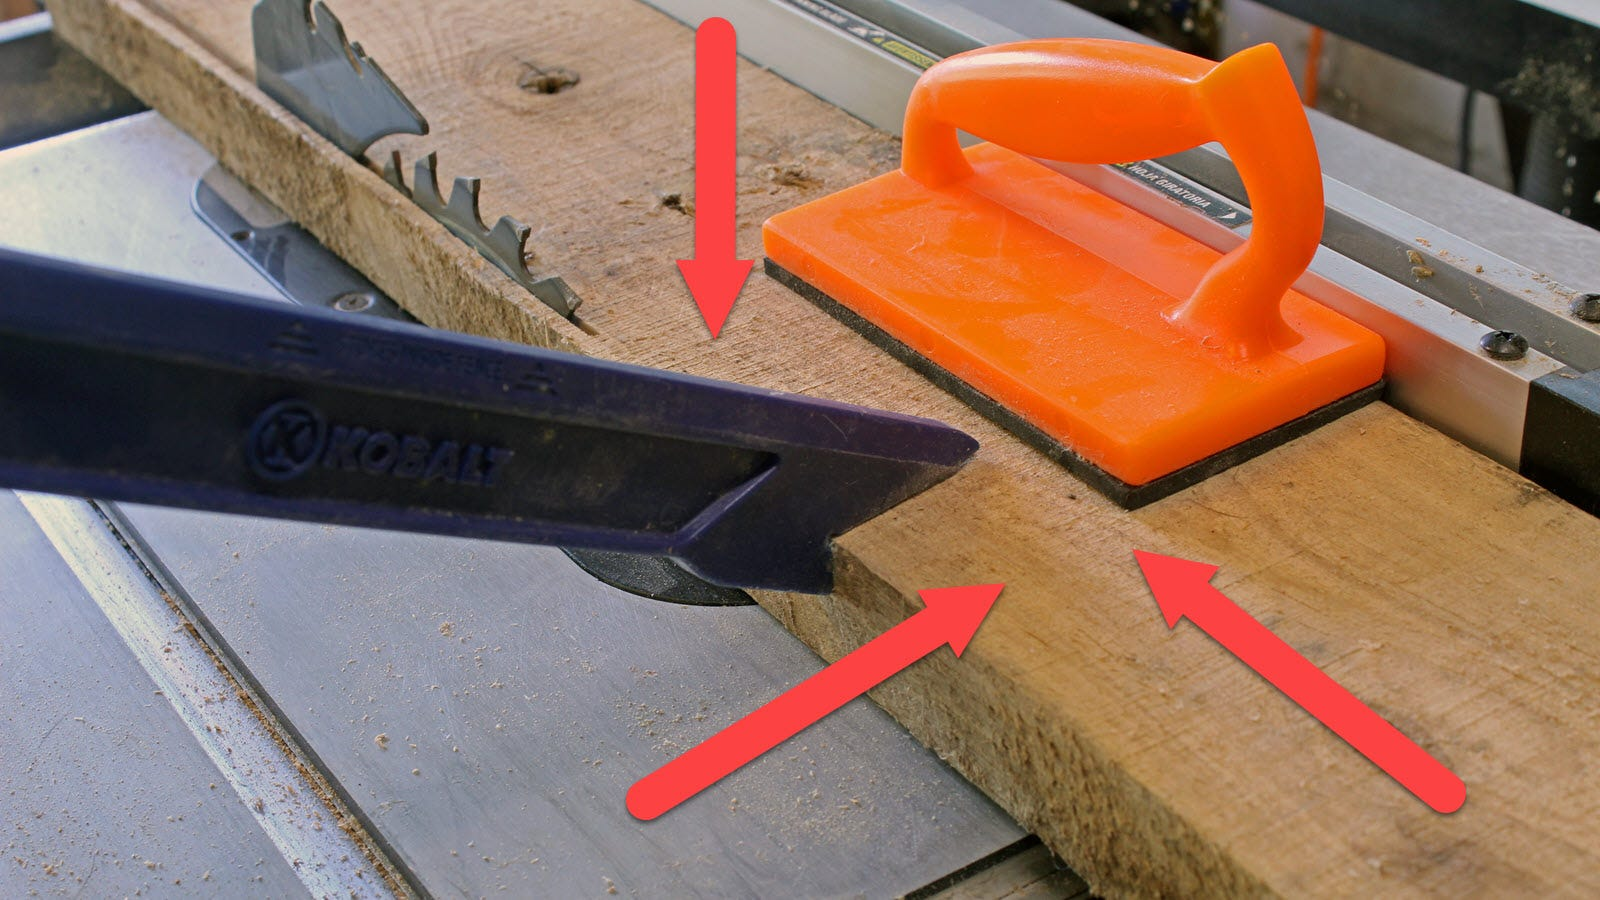 A piece of wood running through a tablesaw with a push stick and block, and three arrows pointing down, sideways and forward.